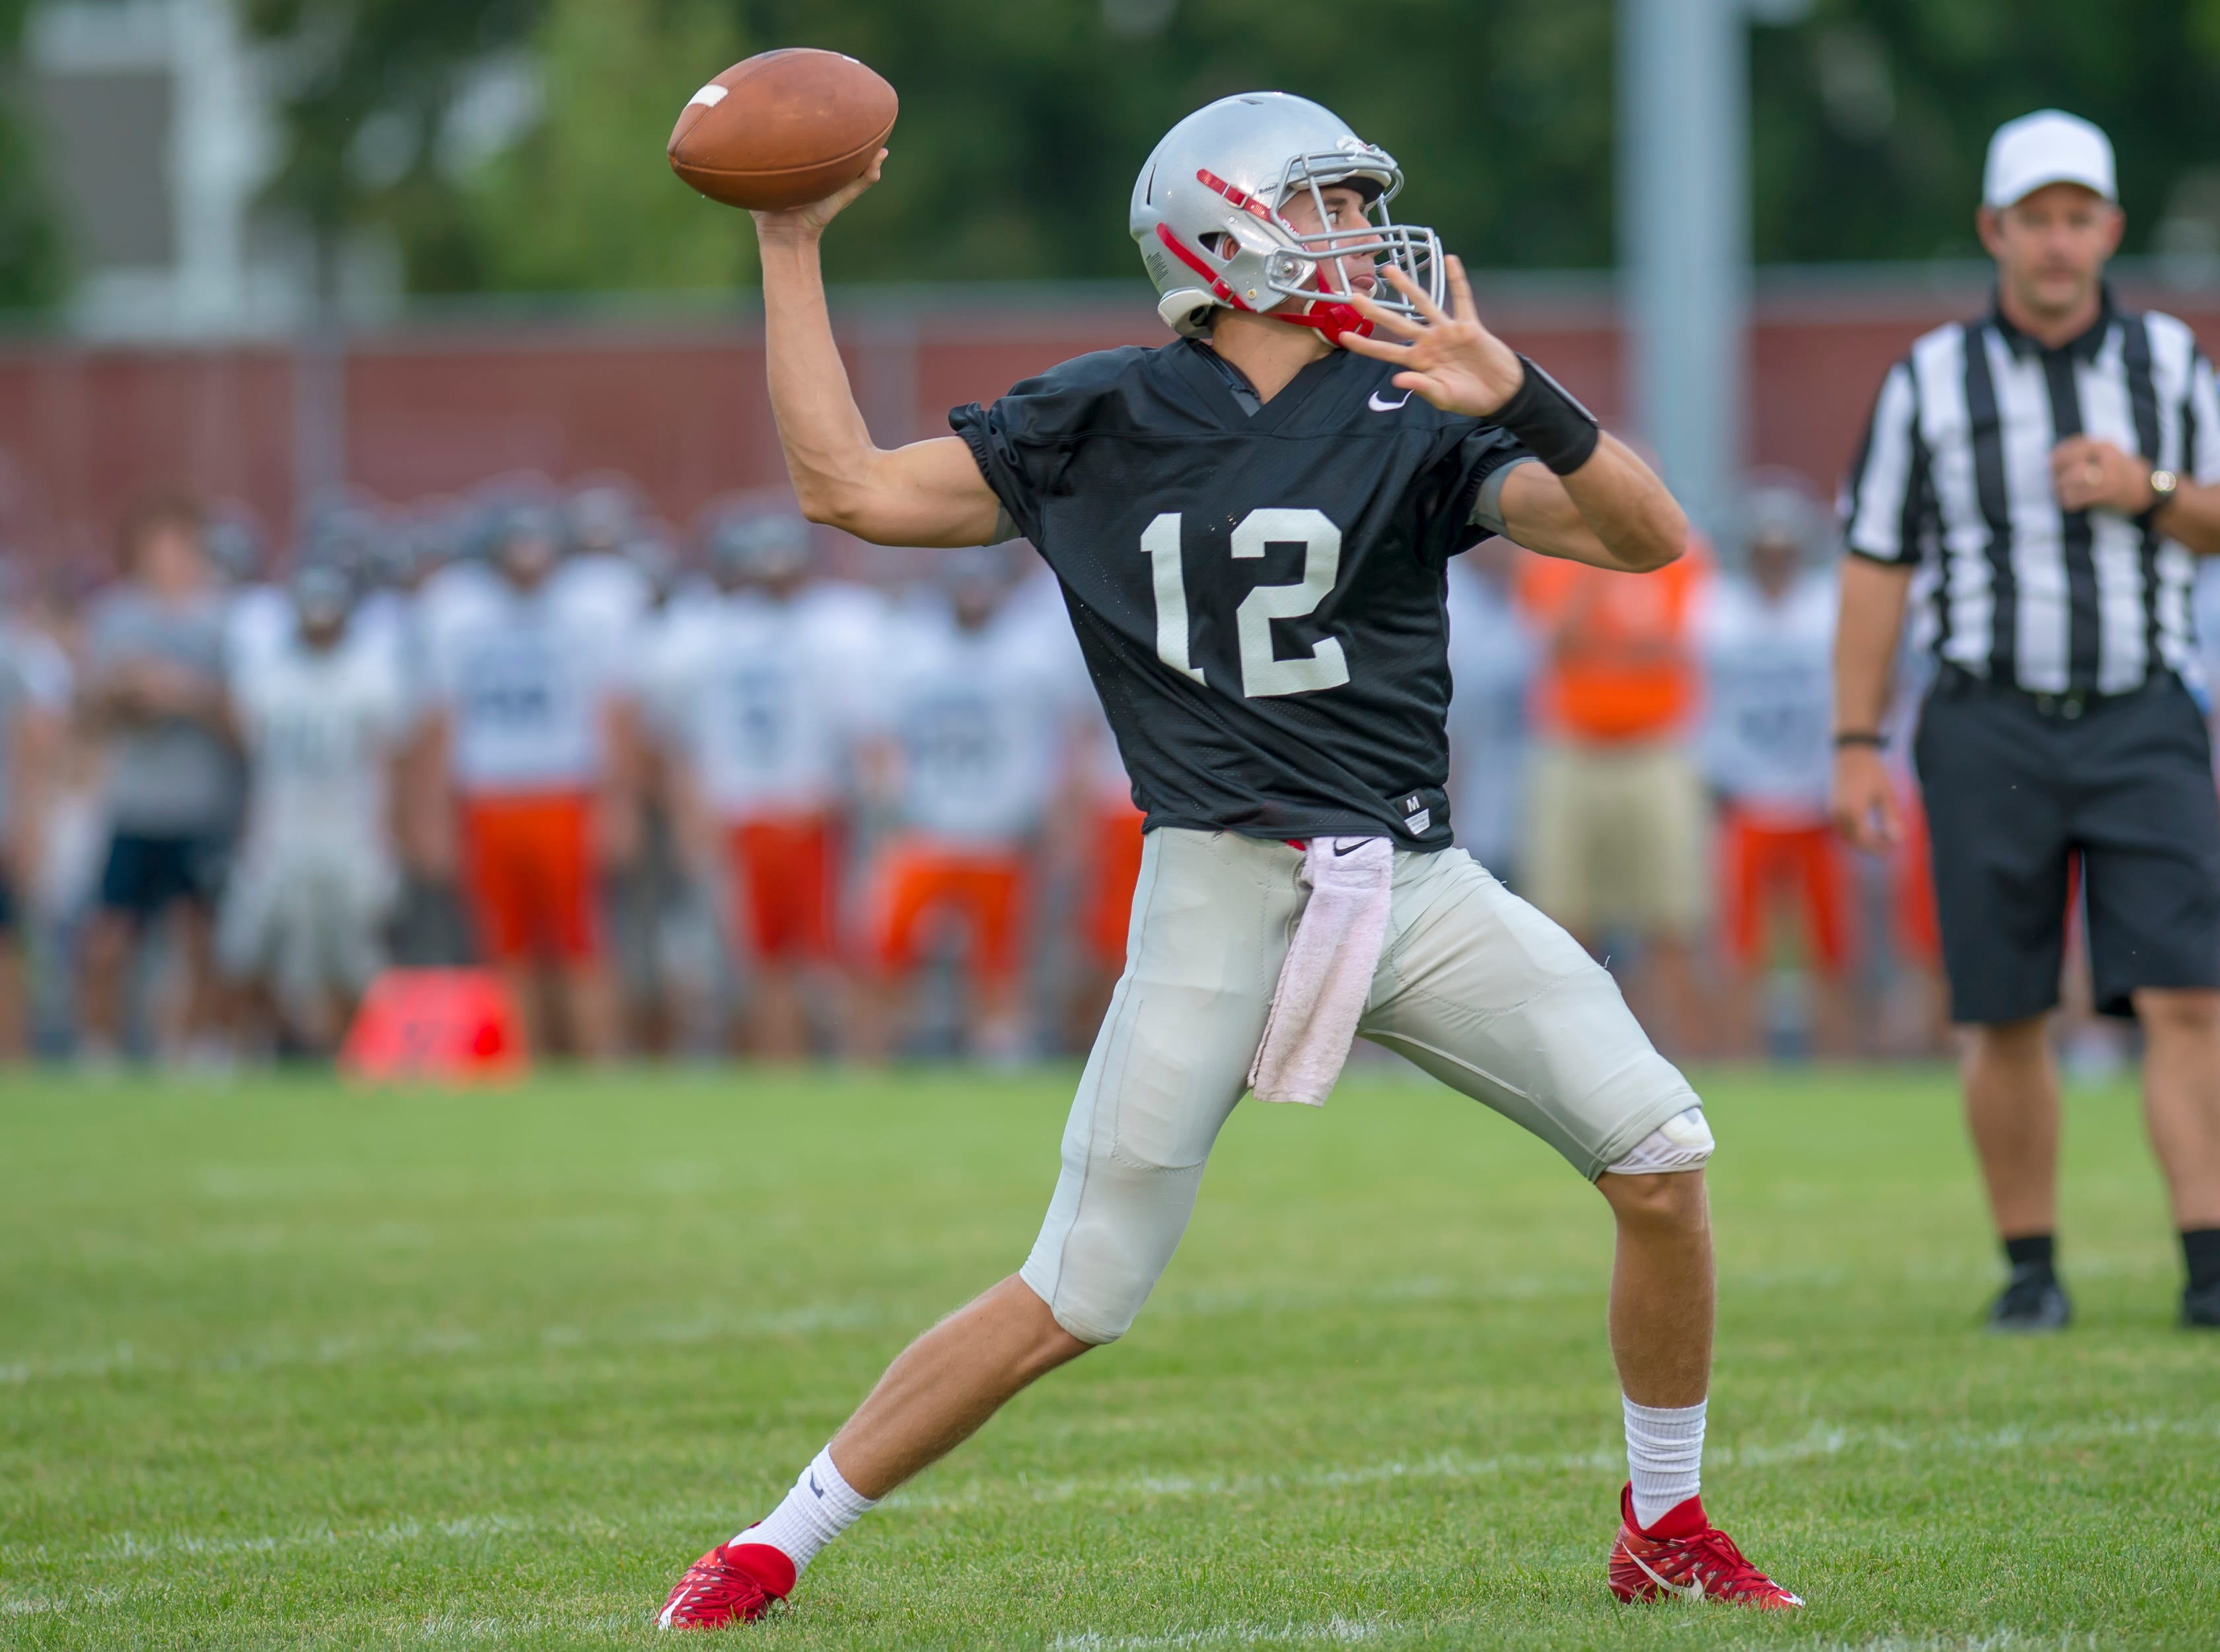 Kyle Adams prepares to launch a bomb in the football scrimmage between the Harrison Raiders and the West Lafayette Red Devils from Gordon Straley Field